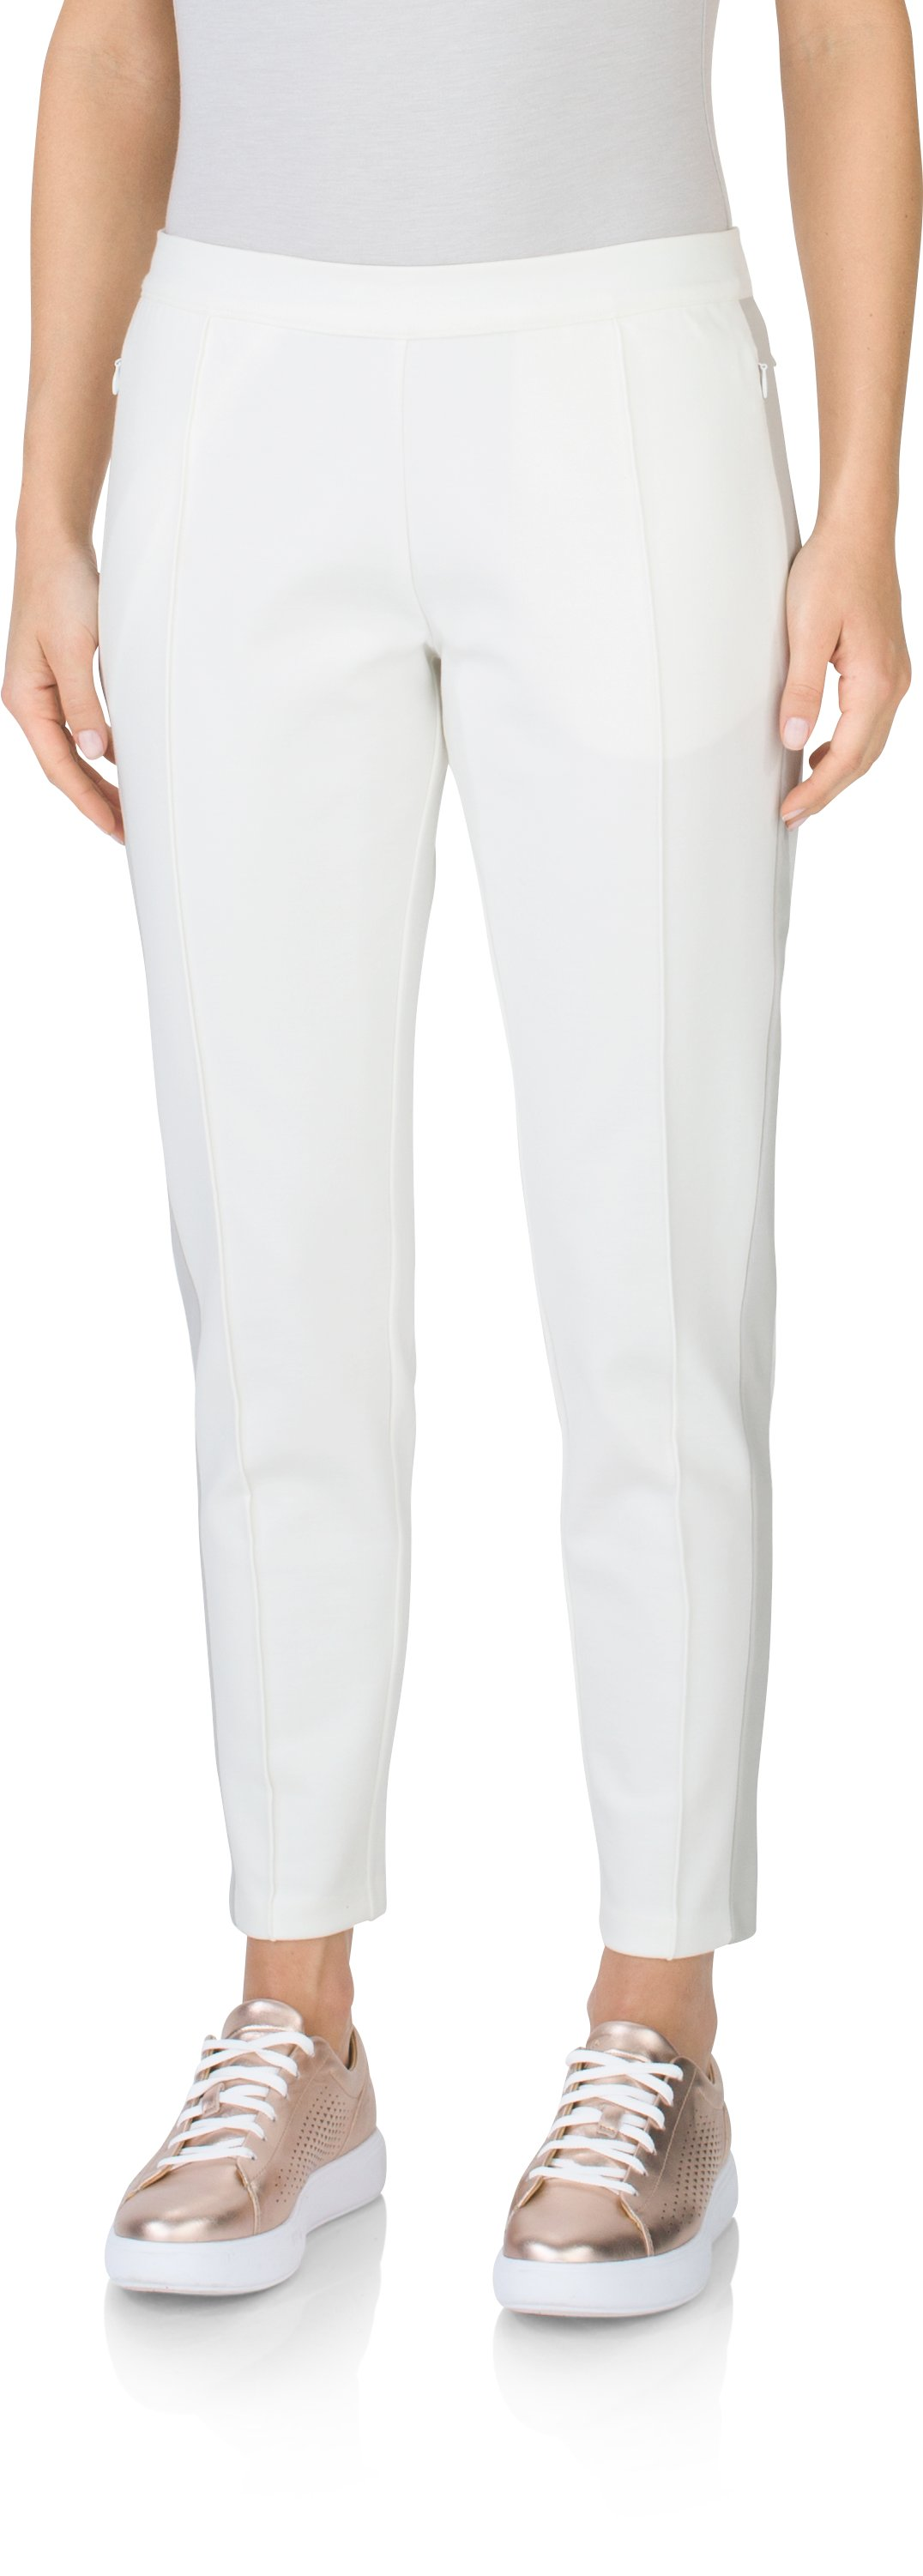 Women's UAS Knit Blocked Pull-On Pants, White, undefined